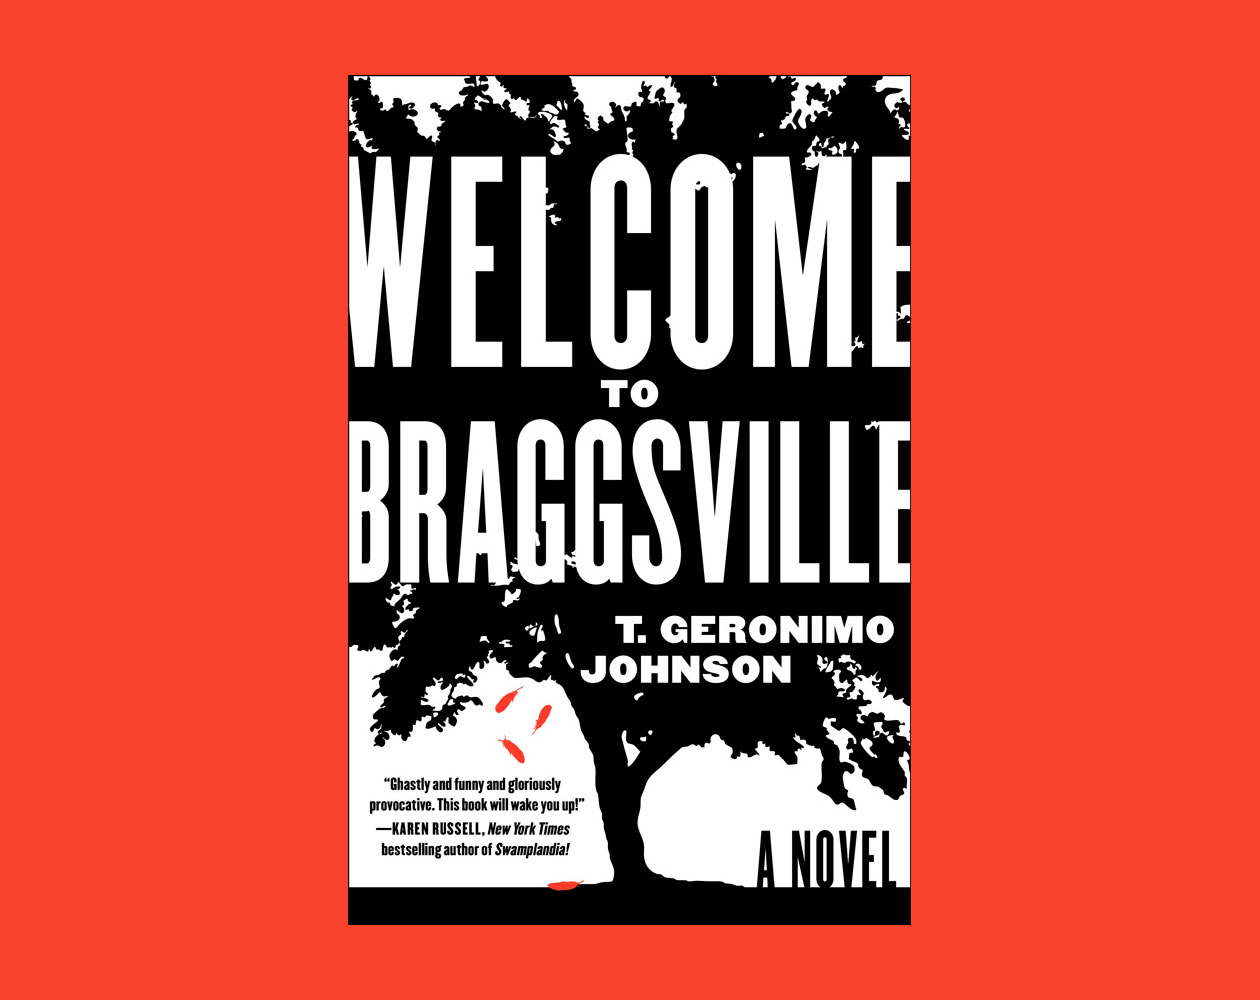 Essays On Management The Tour Nt Of Books Long List The Morning News Welcome To Braggsville By T  Geronimo My Grandparents Essay also Do Essays Have To Be 5 Paragraphs Love And Hate Essay Star Wars Essay My Life Long Love Hate Affair  Argumentative Essay On Stem Cell Research